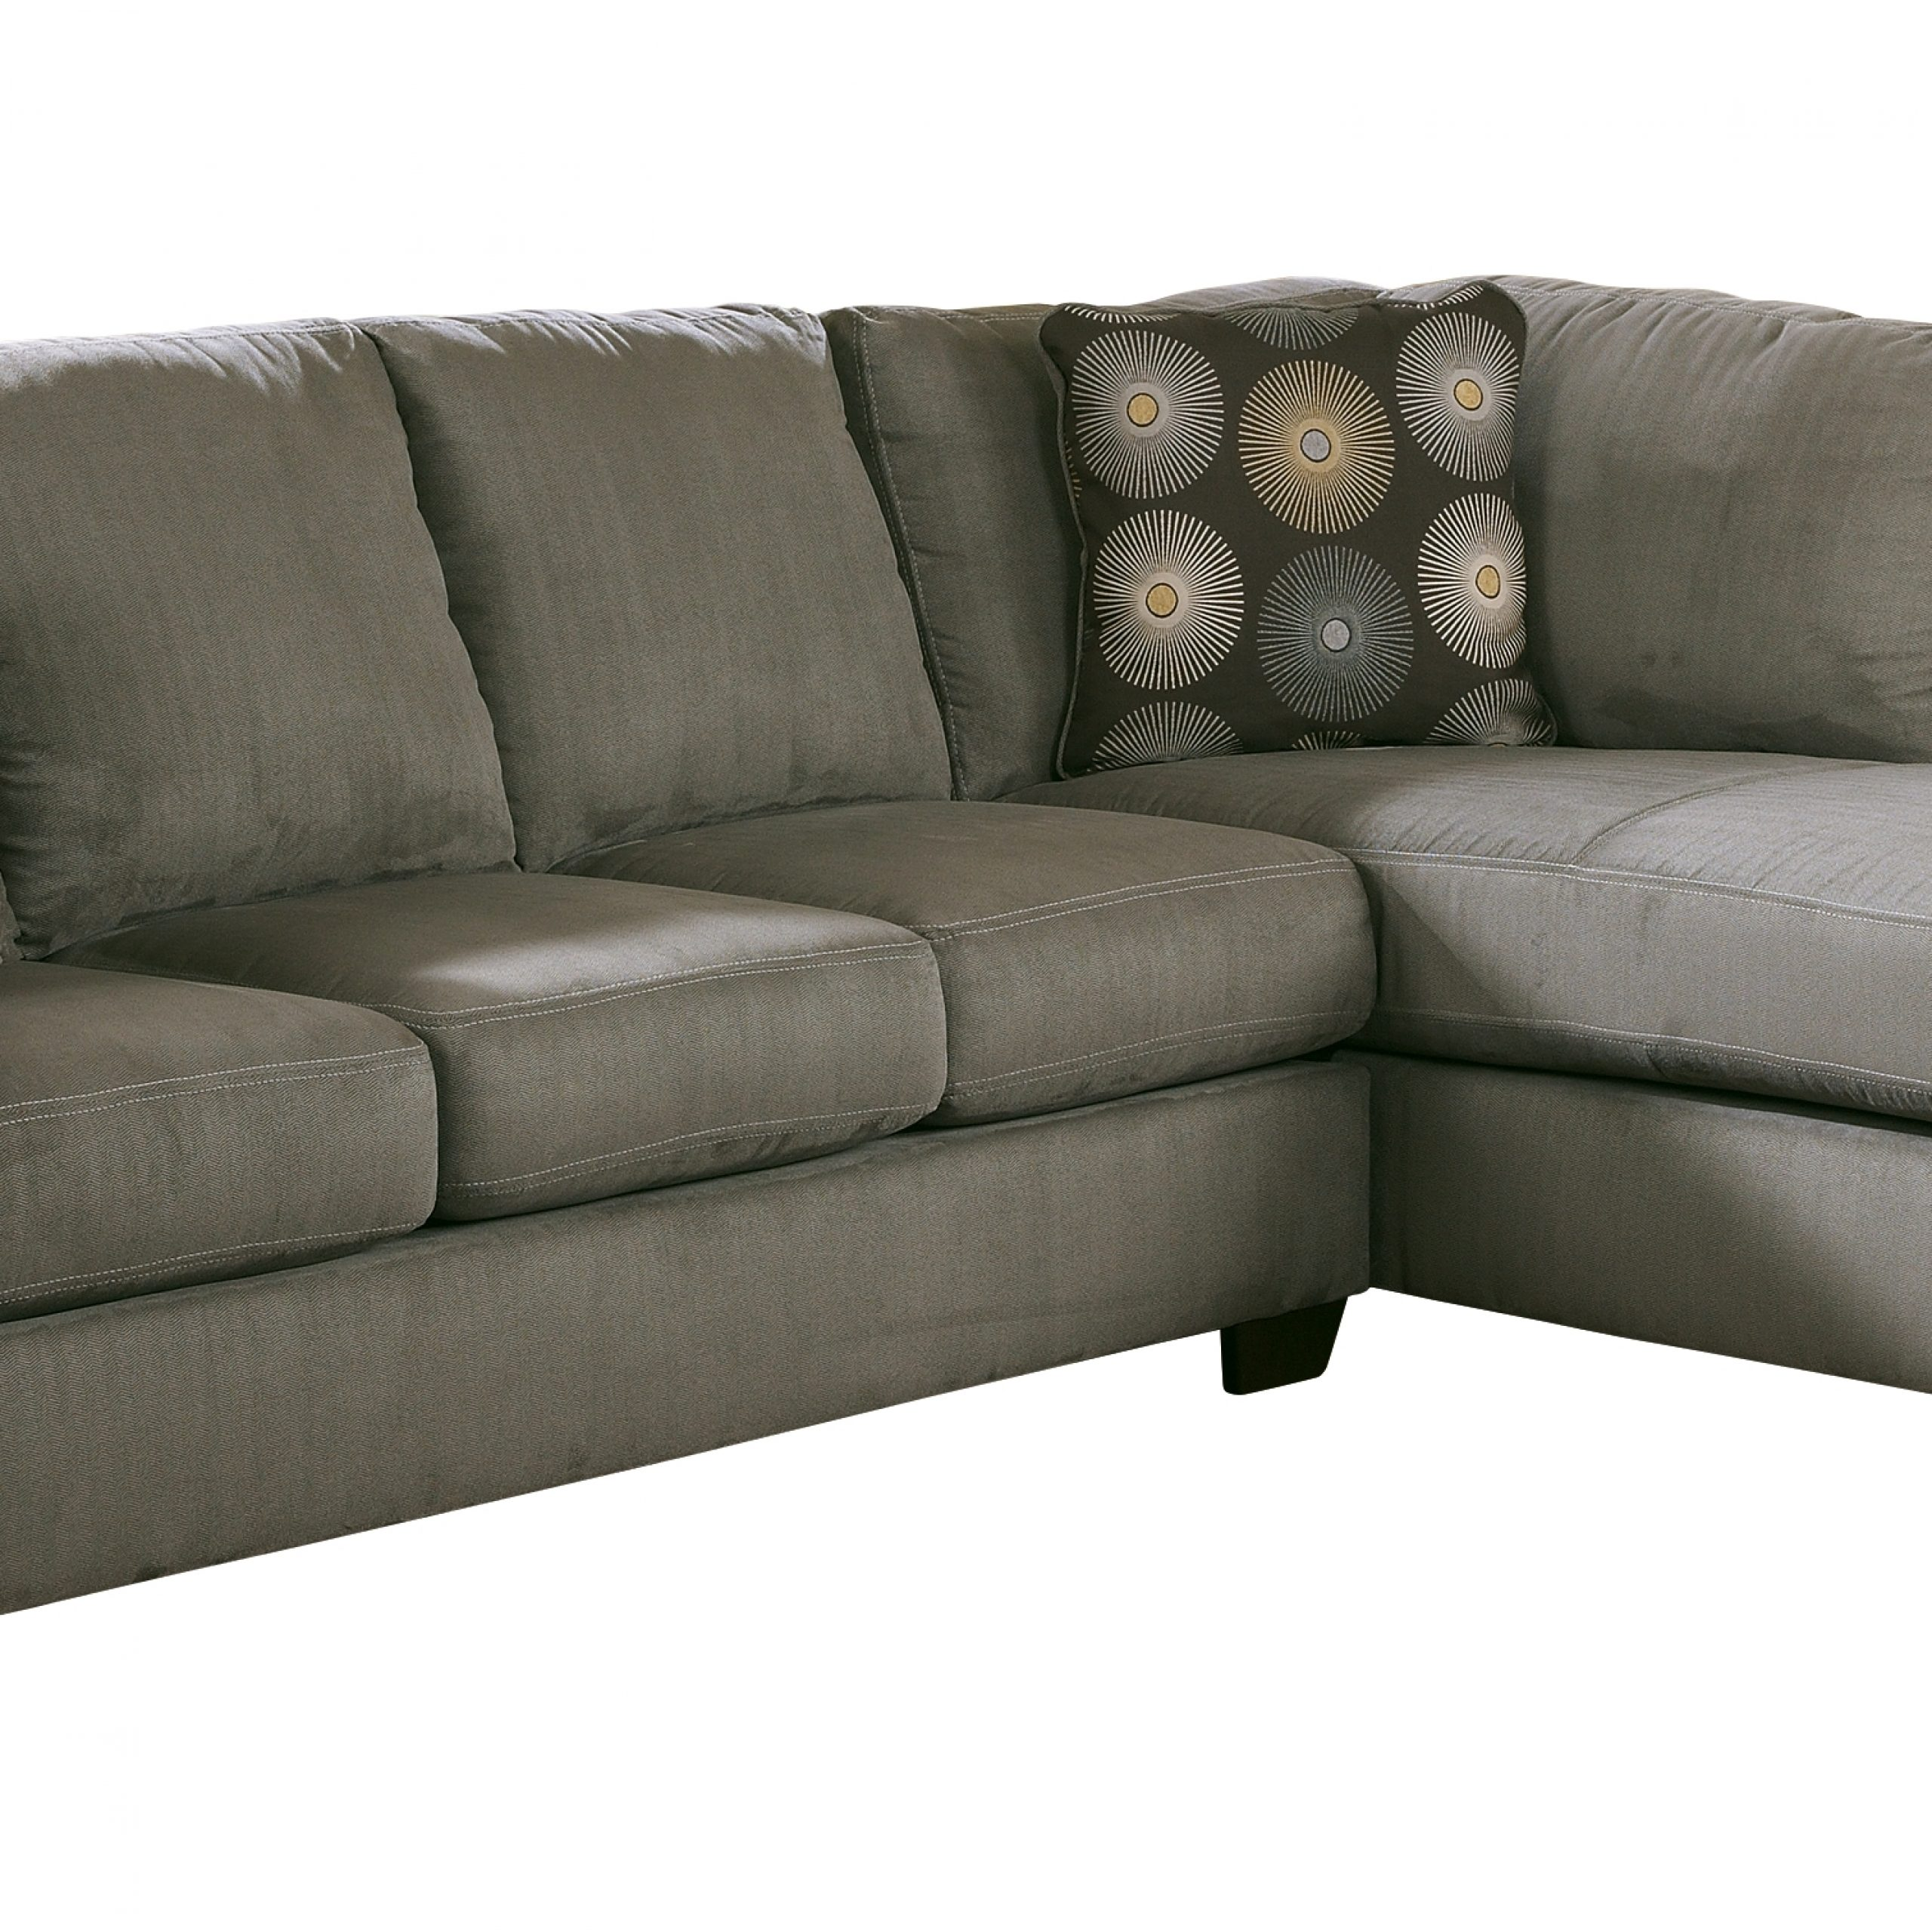 Famous Zella 2 Piece Sectional With Chaisesignature Design Pertaining To 2pc Burland Contemporary Chaise Sectional Sofas (View 17 of 20)